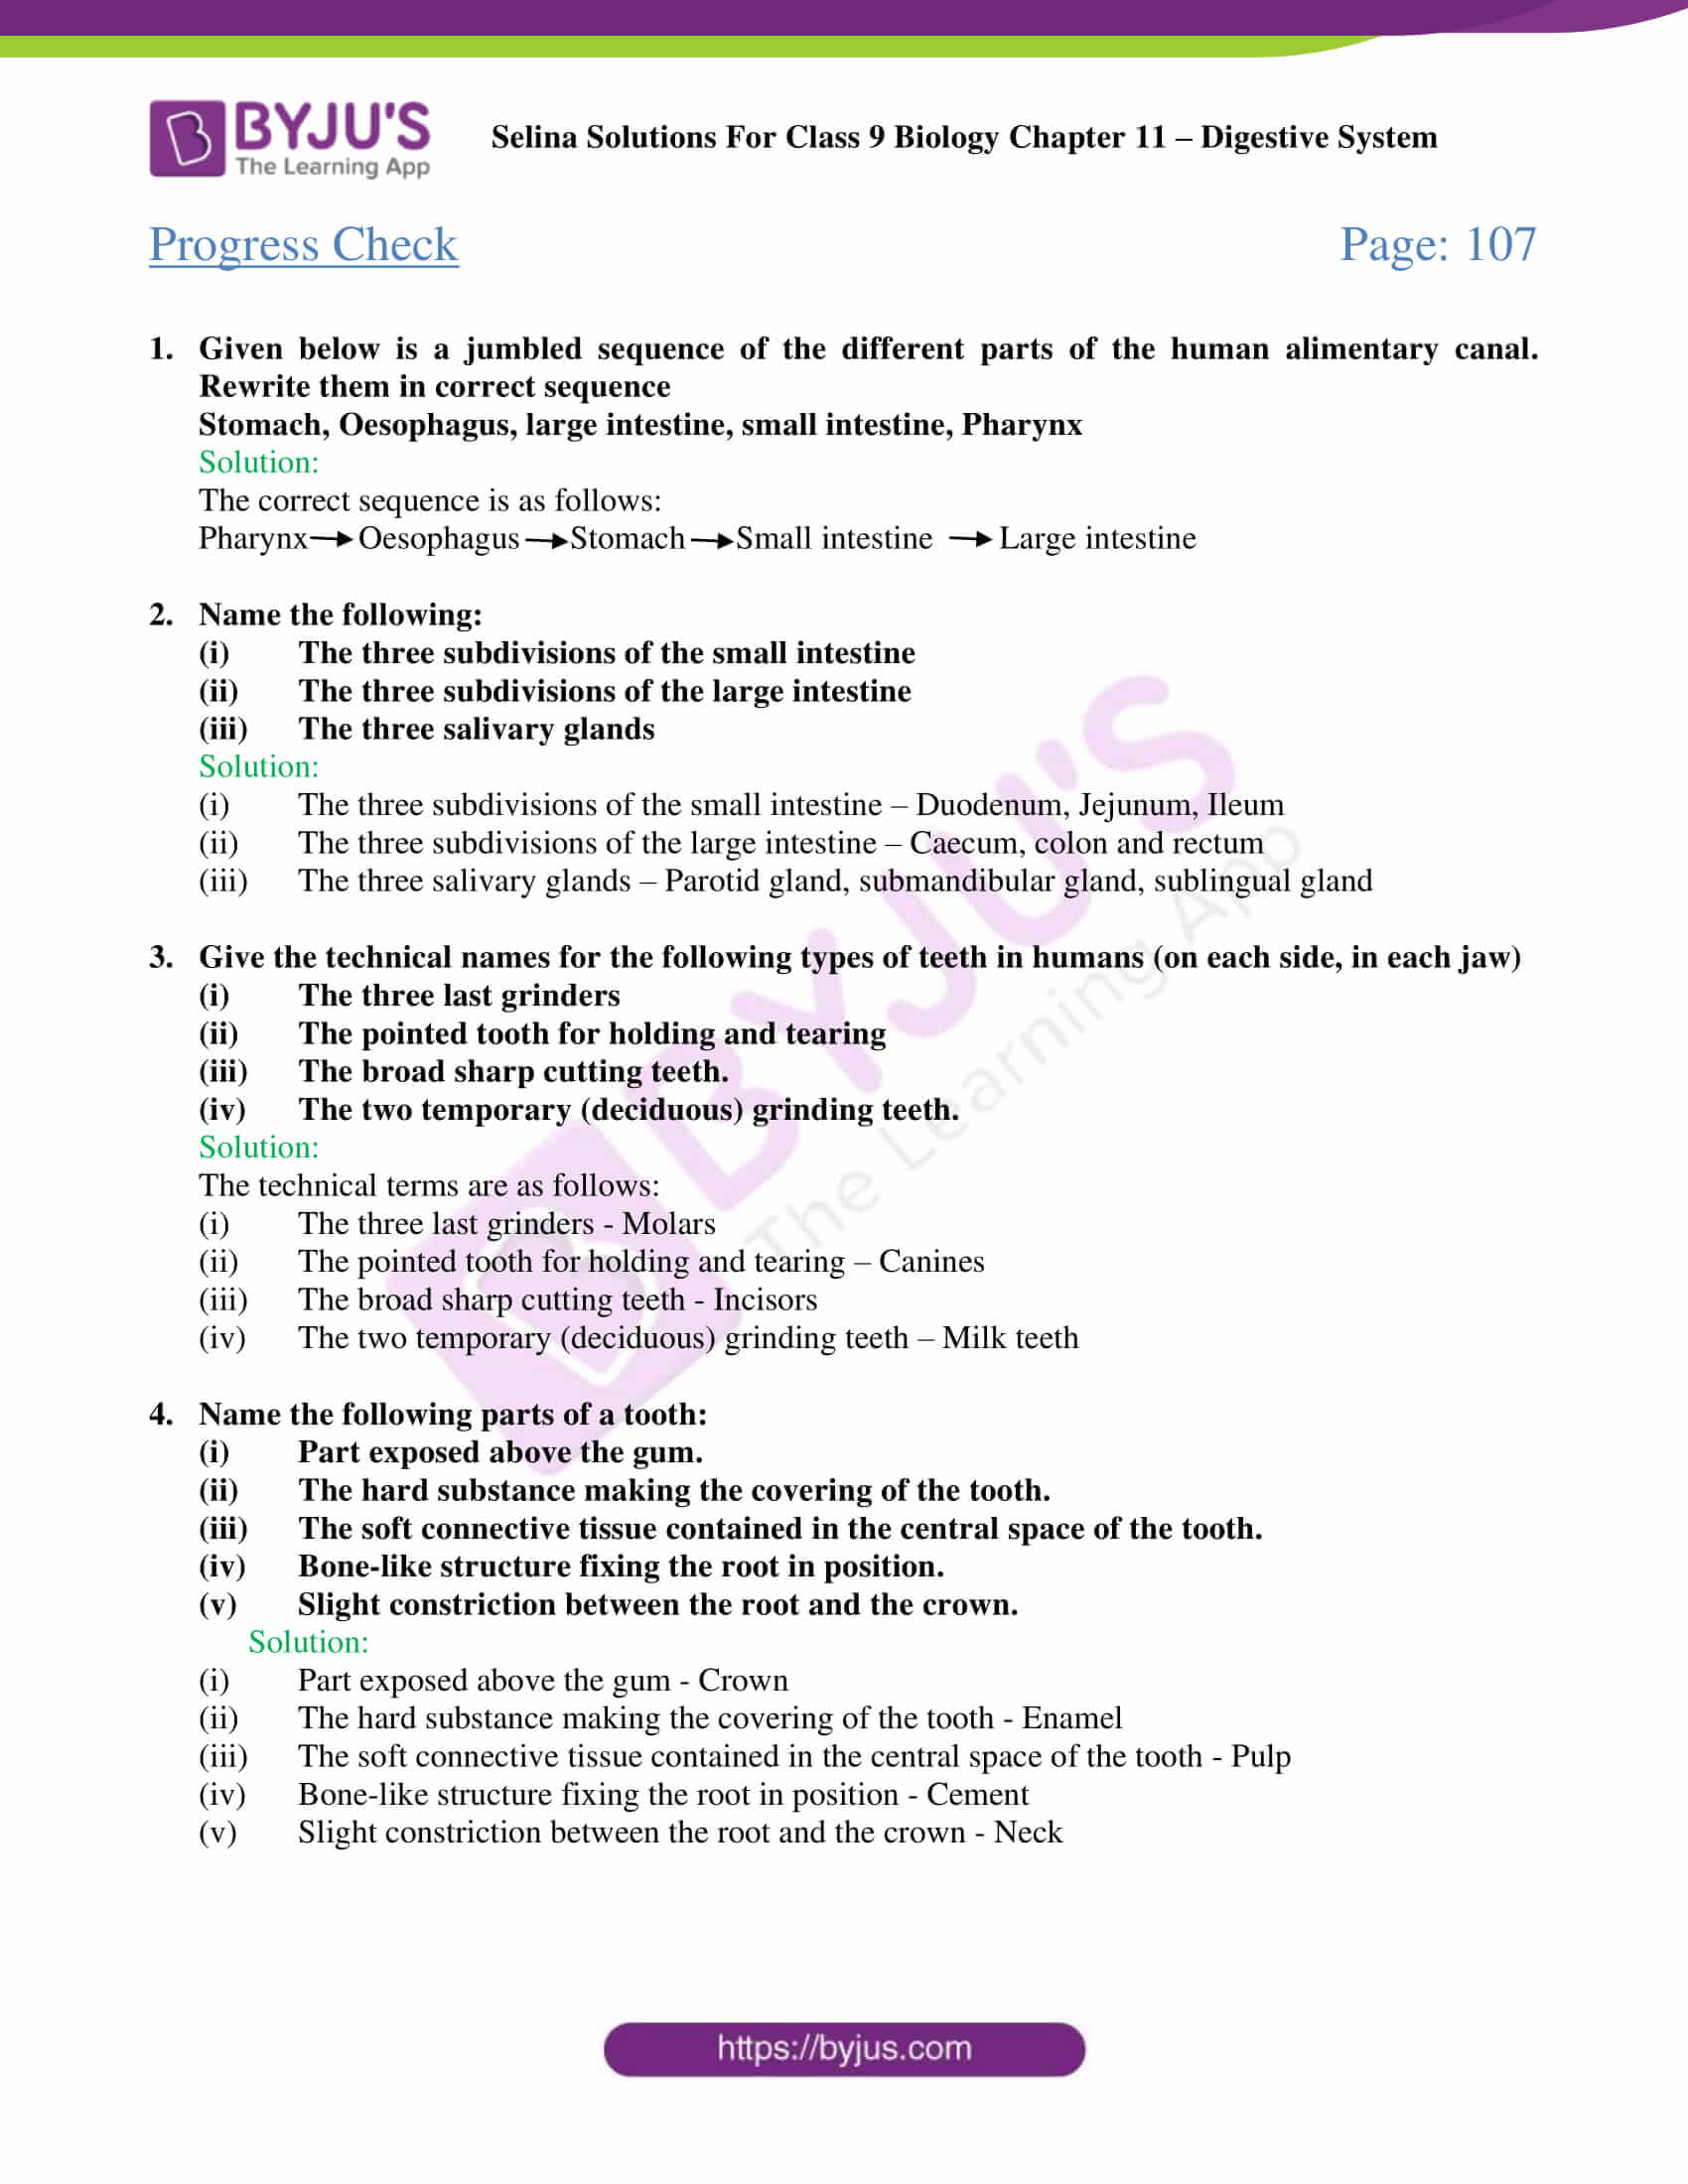 Selina Solutions Class 9 Concise Biology Chapter 11 Digestive System -Download Free PDF